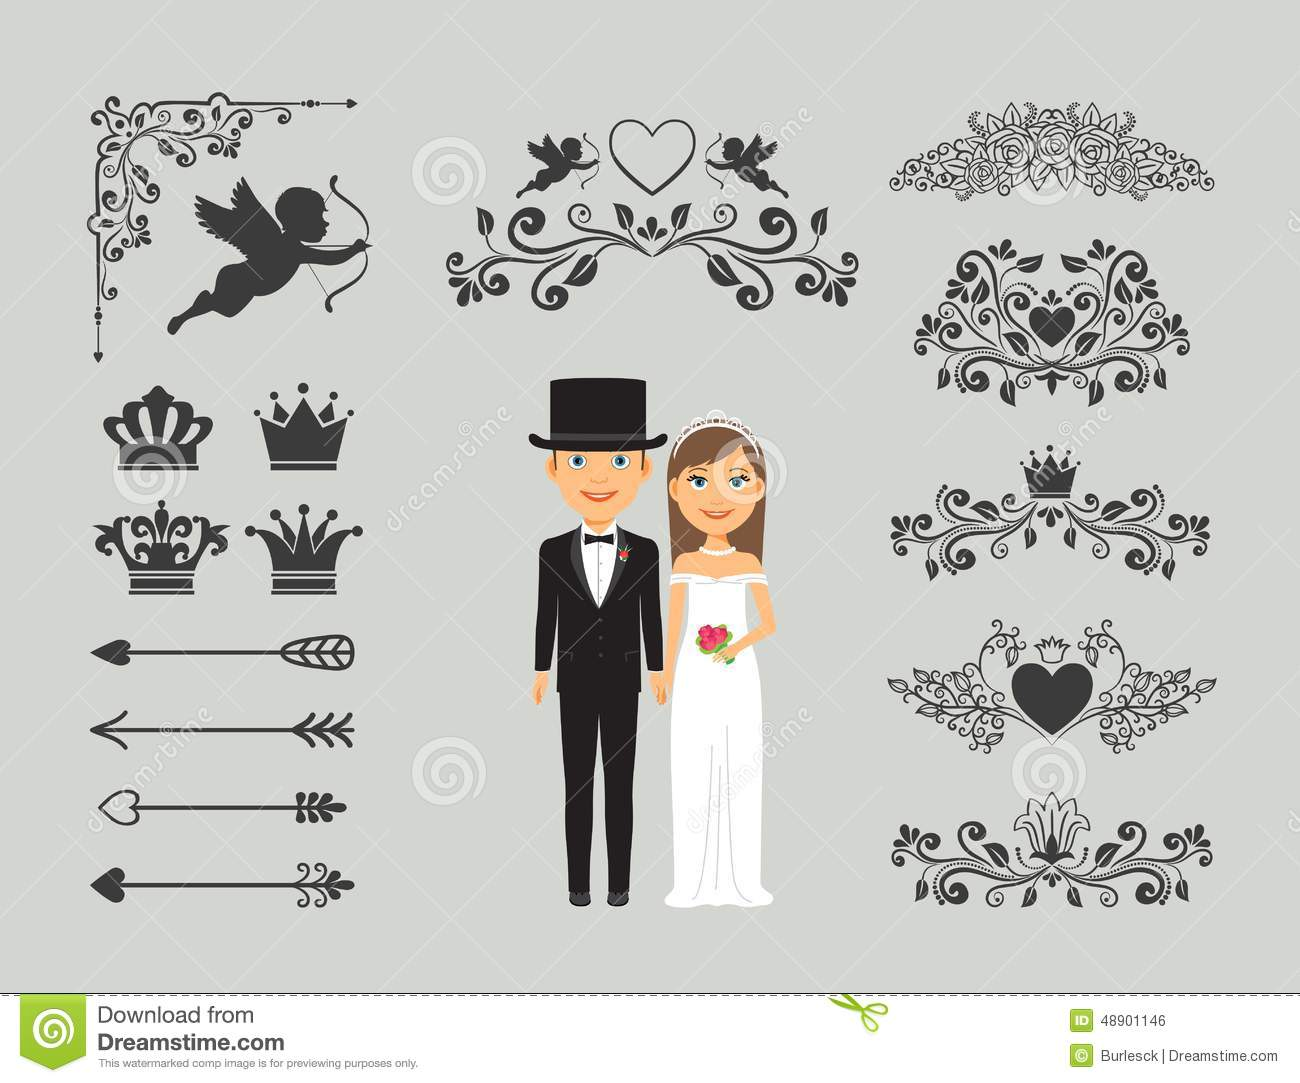 Wedding invitation design elements stock vector illustration of download comp junglespirit Image collections